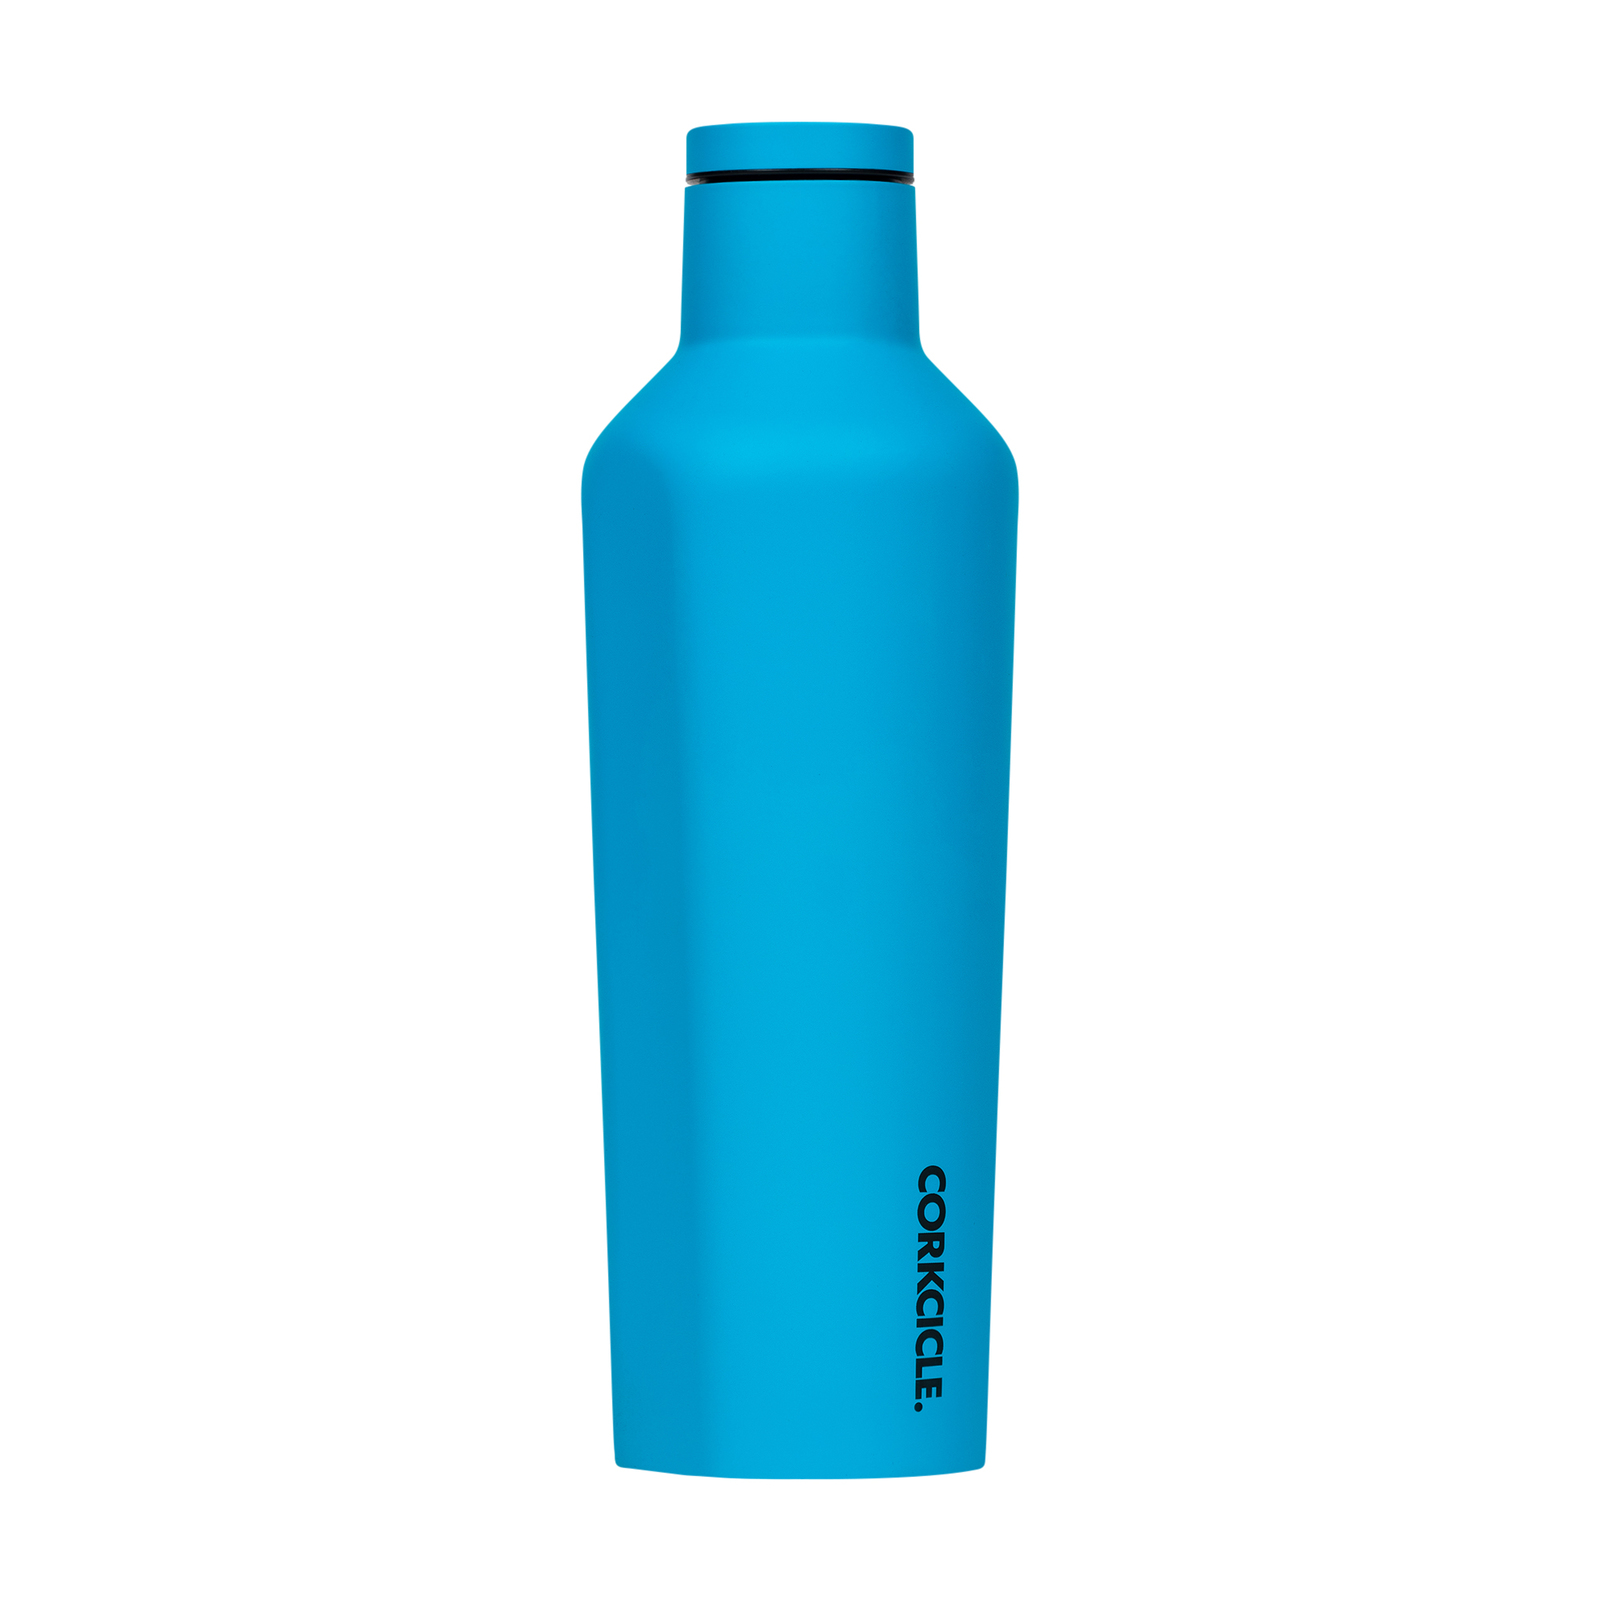 Corkcicle: Canteen - Neon Blue (473ml) image